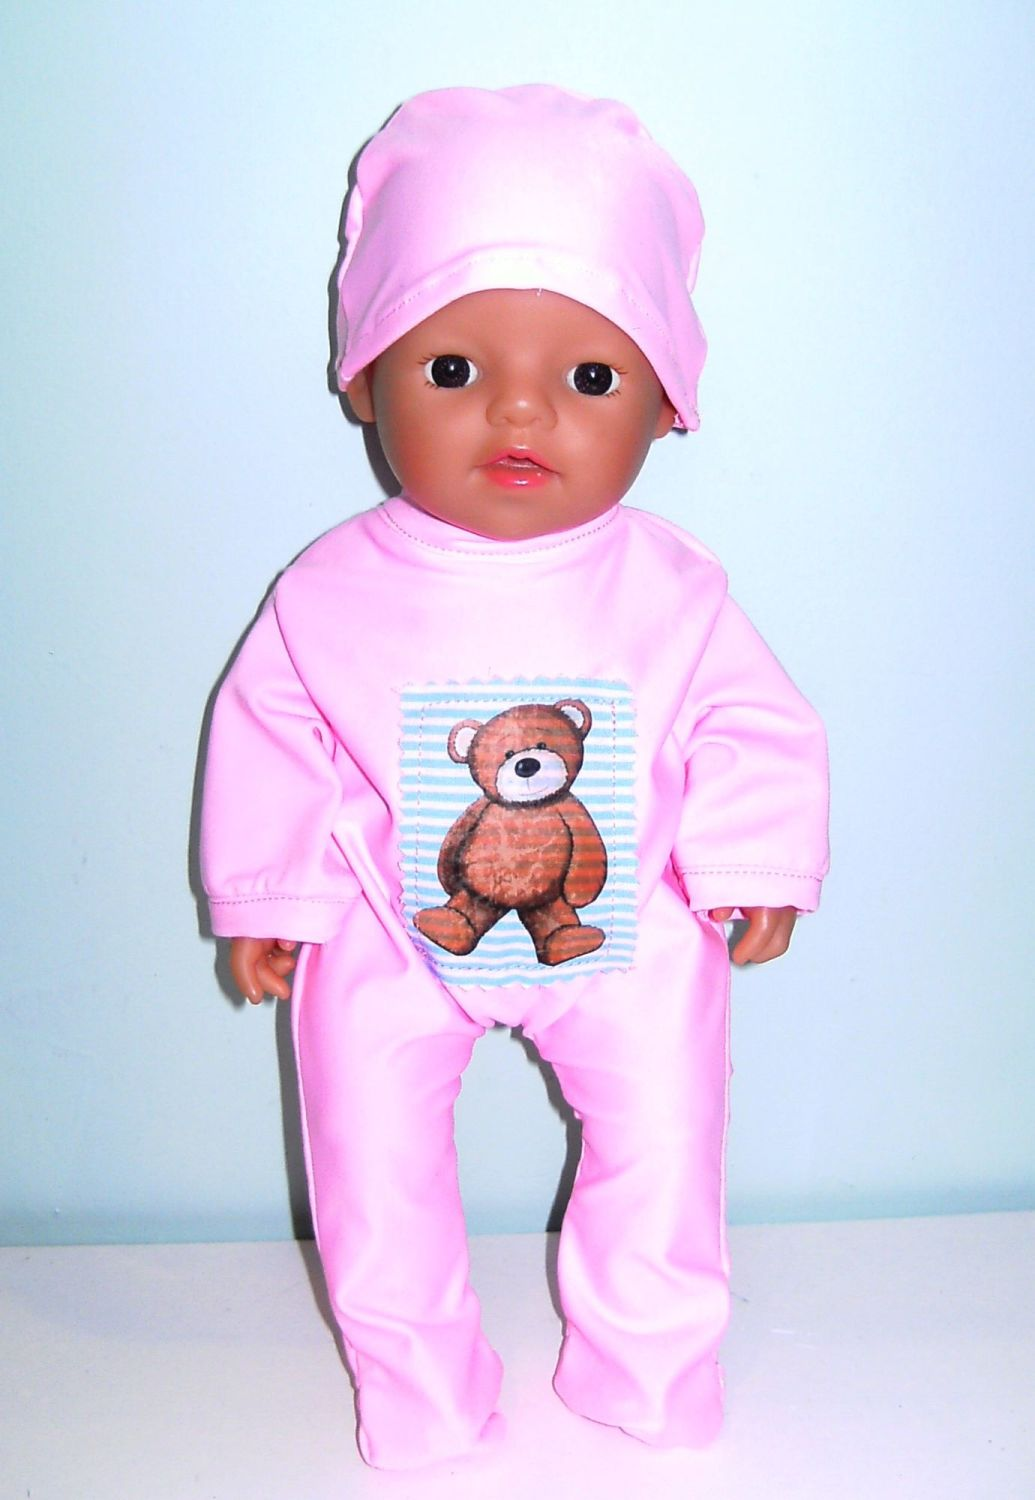 Doll's babygro / sleepsuit and beanie  for a 12 inch baby doll